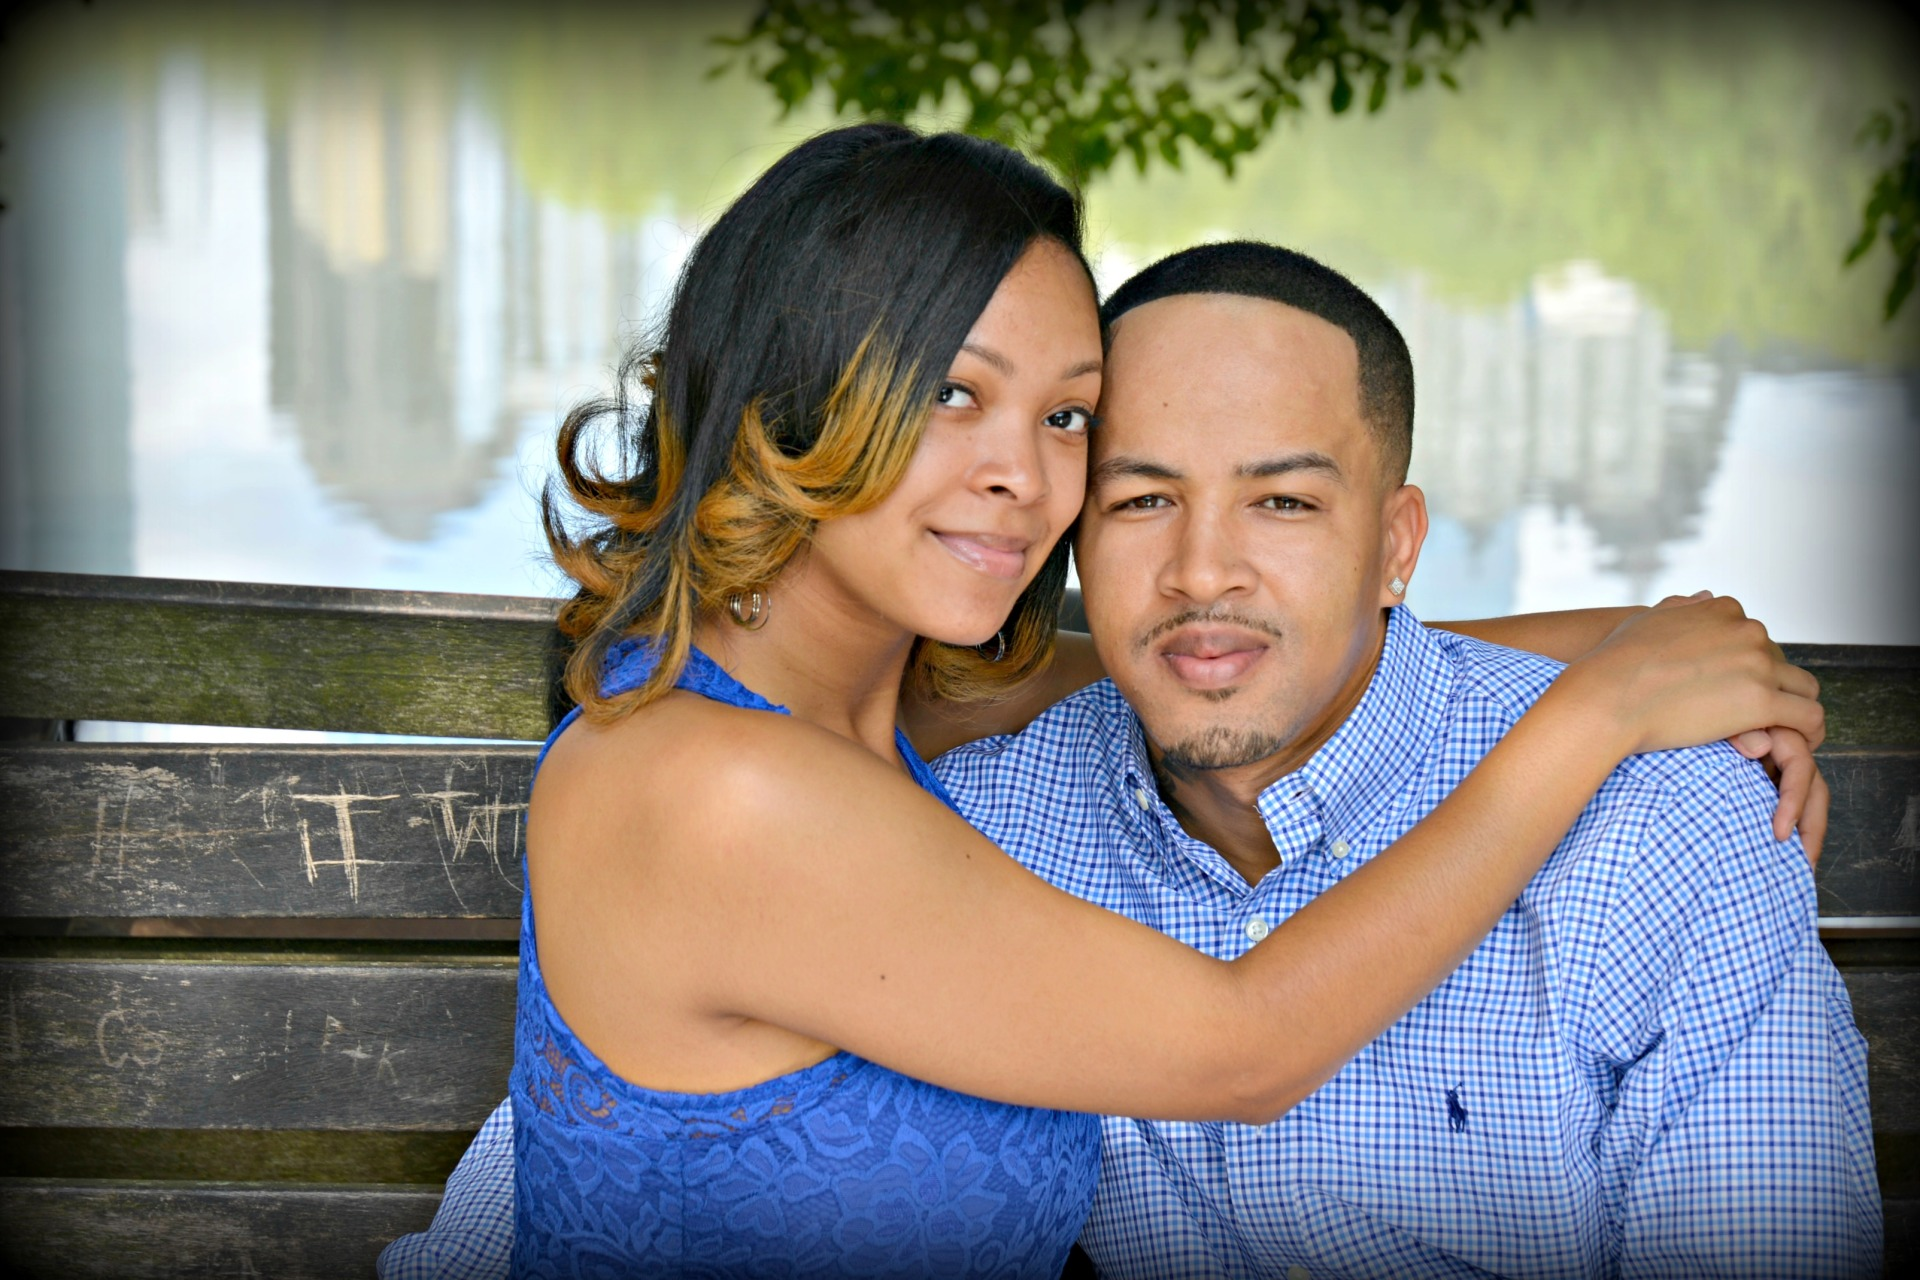 Royal Images Plus, local photography services. In Decatur area providing photography for Events and functions. Decatur photographers for corporate, family events in Decatur. Also Photo Booths, wedding Photography with personalized portrait sessions. Providing Photo Booths in Decatur for any event. For Head Shots, portraits, and more. Royal Images Plus is the right photographer for your Wedding, photo booths, onsite printing needs.